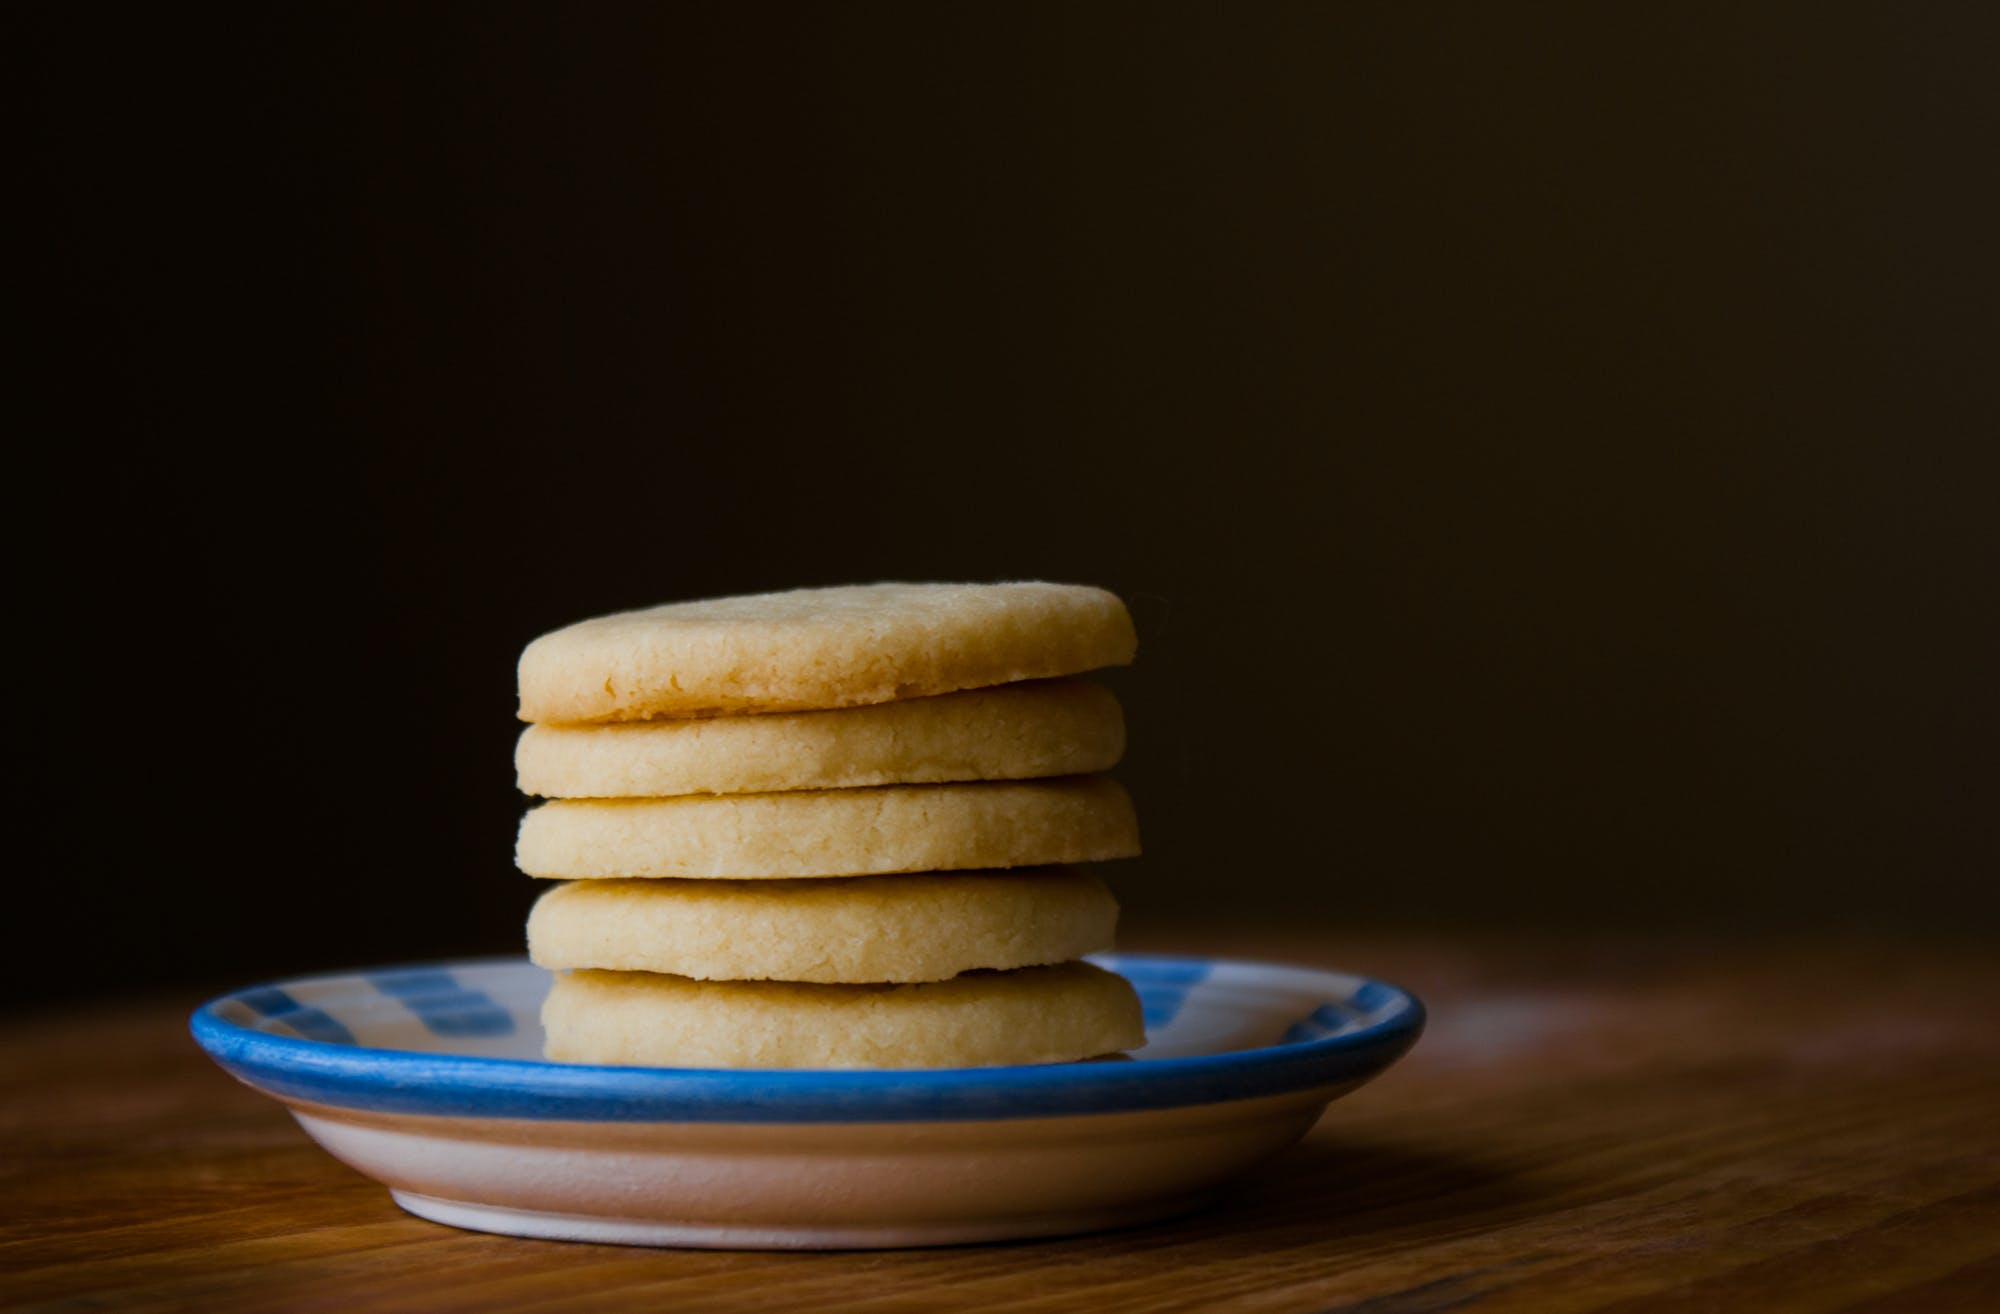 Free stock photo of plate, blur, dessert, cookies